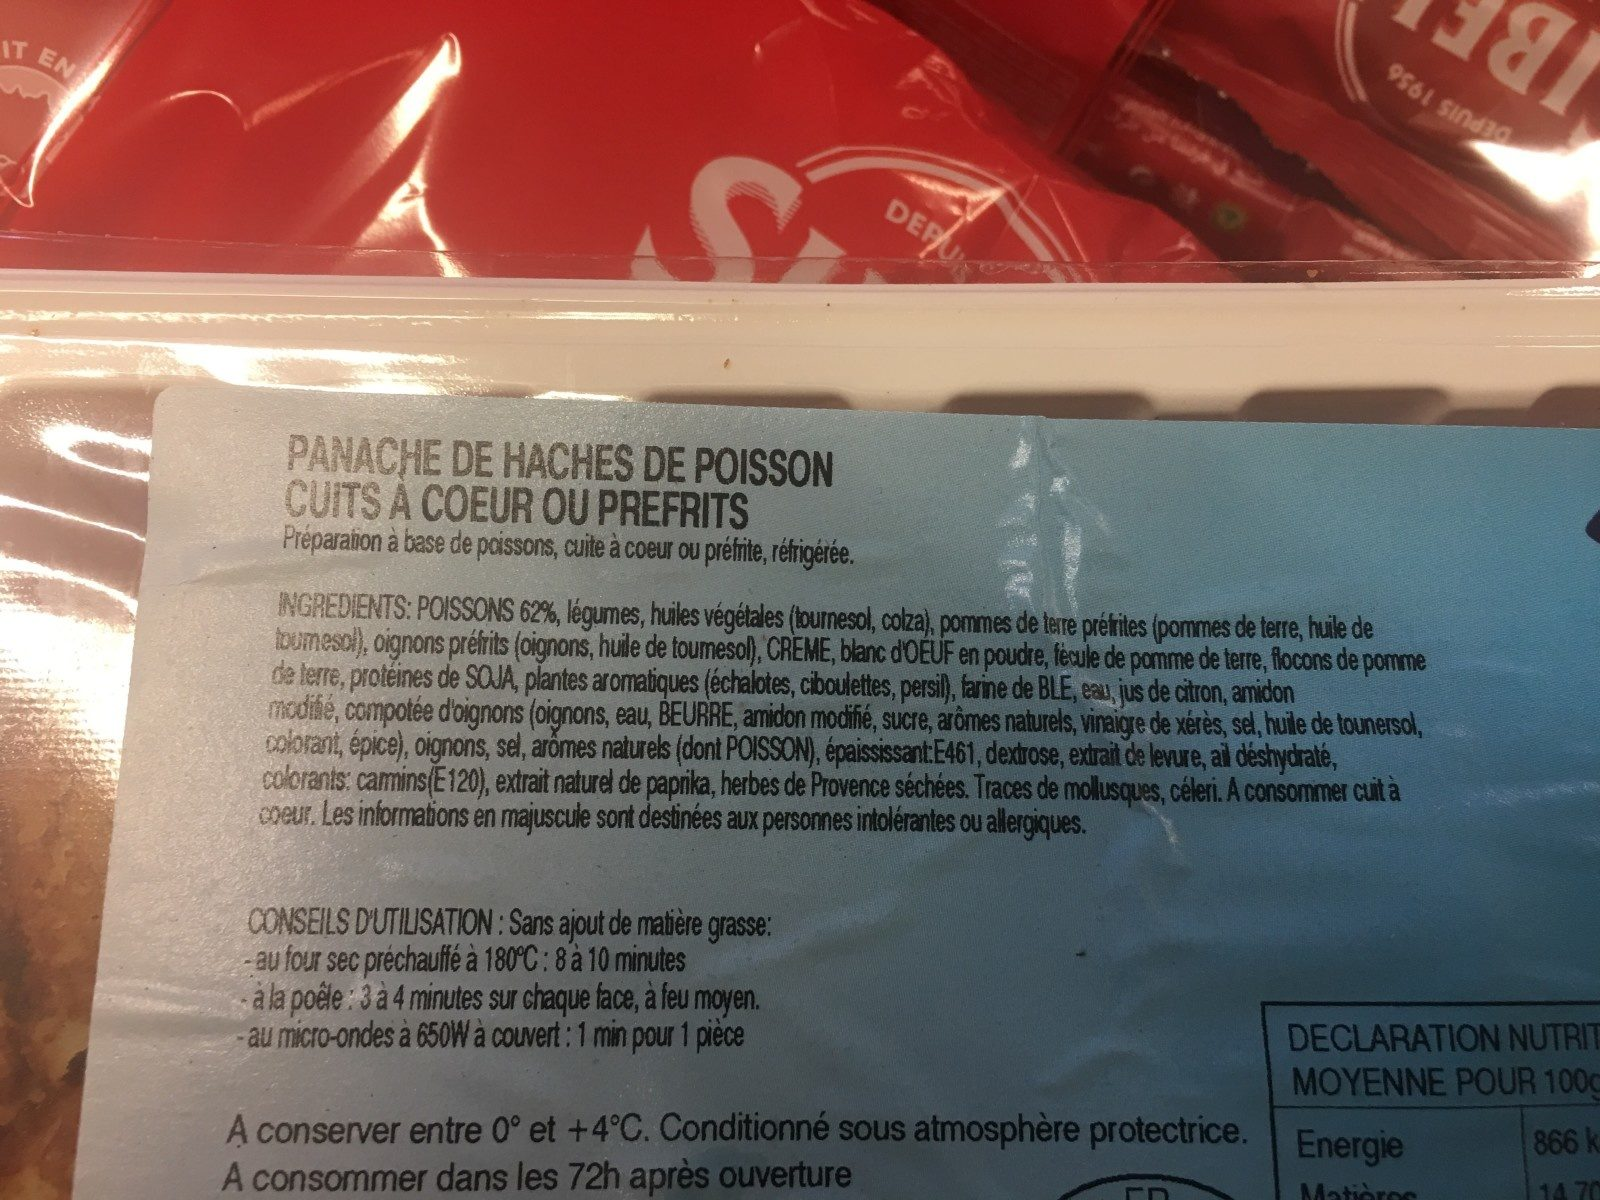 Panache de hache de poisson - Ingredients - fr